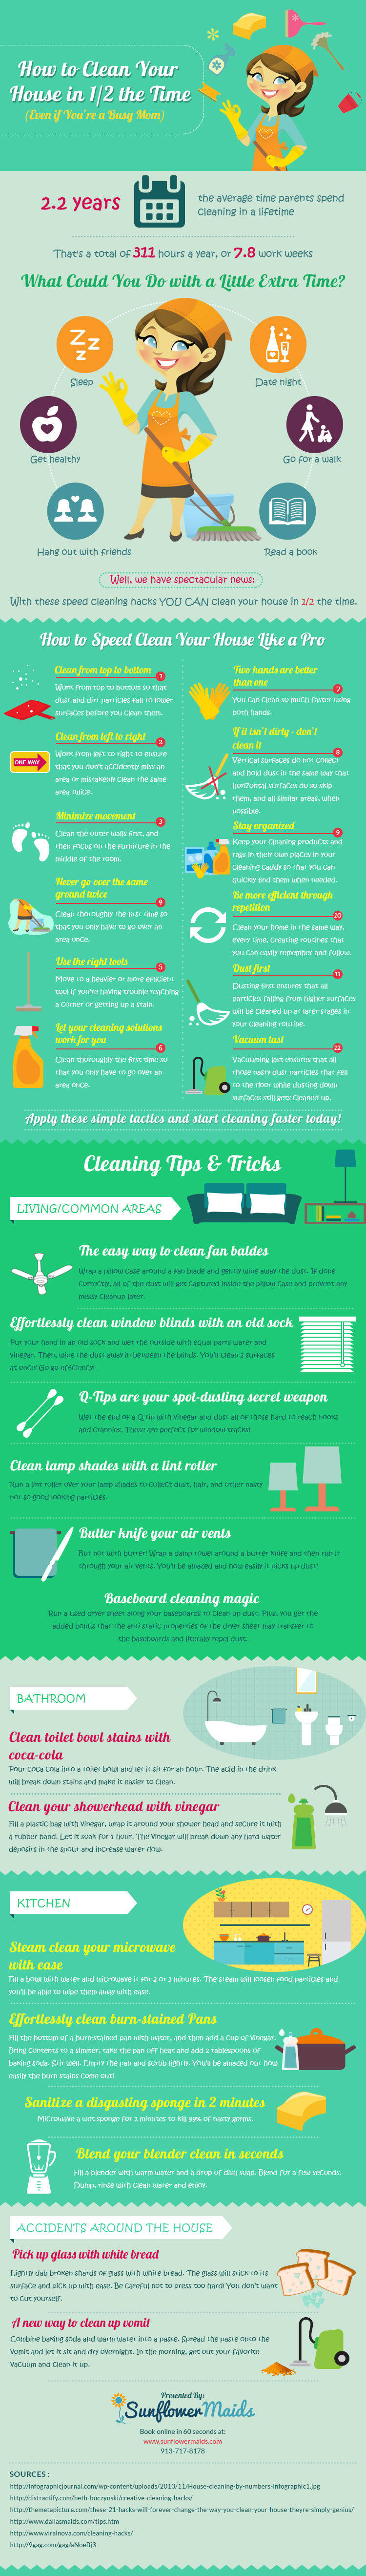 INFOGRAPHIC How to Clean Your House in 1/2 the Time